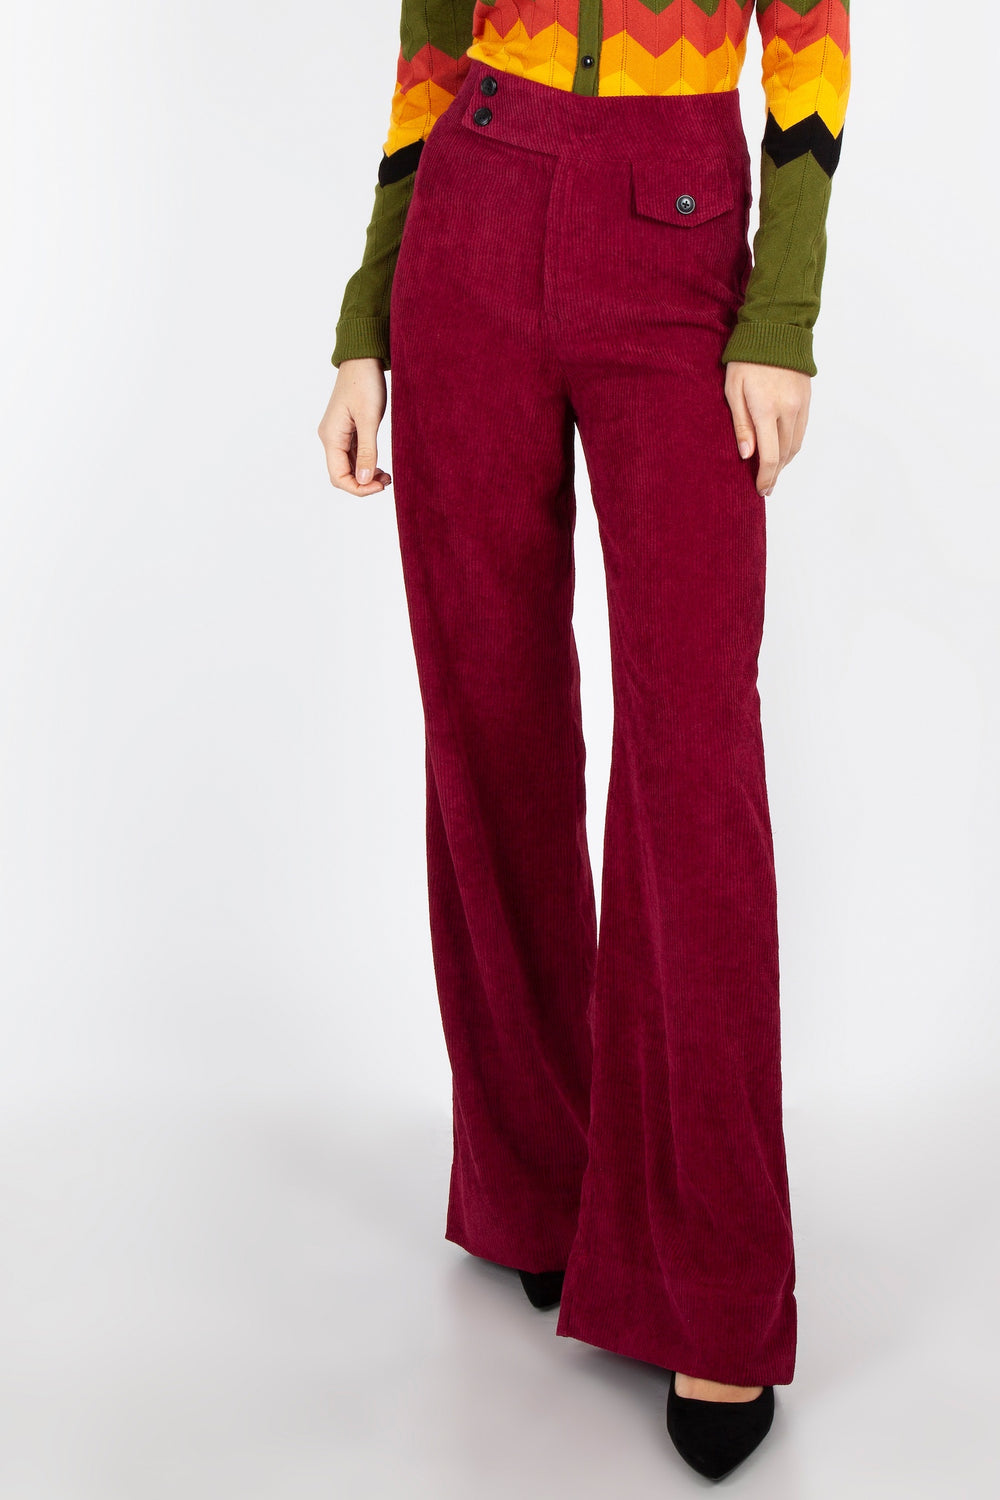 Supersleuth Corduroy Trousers in Burgundy